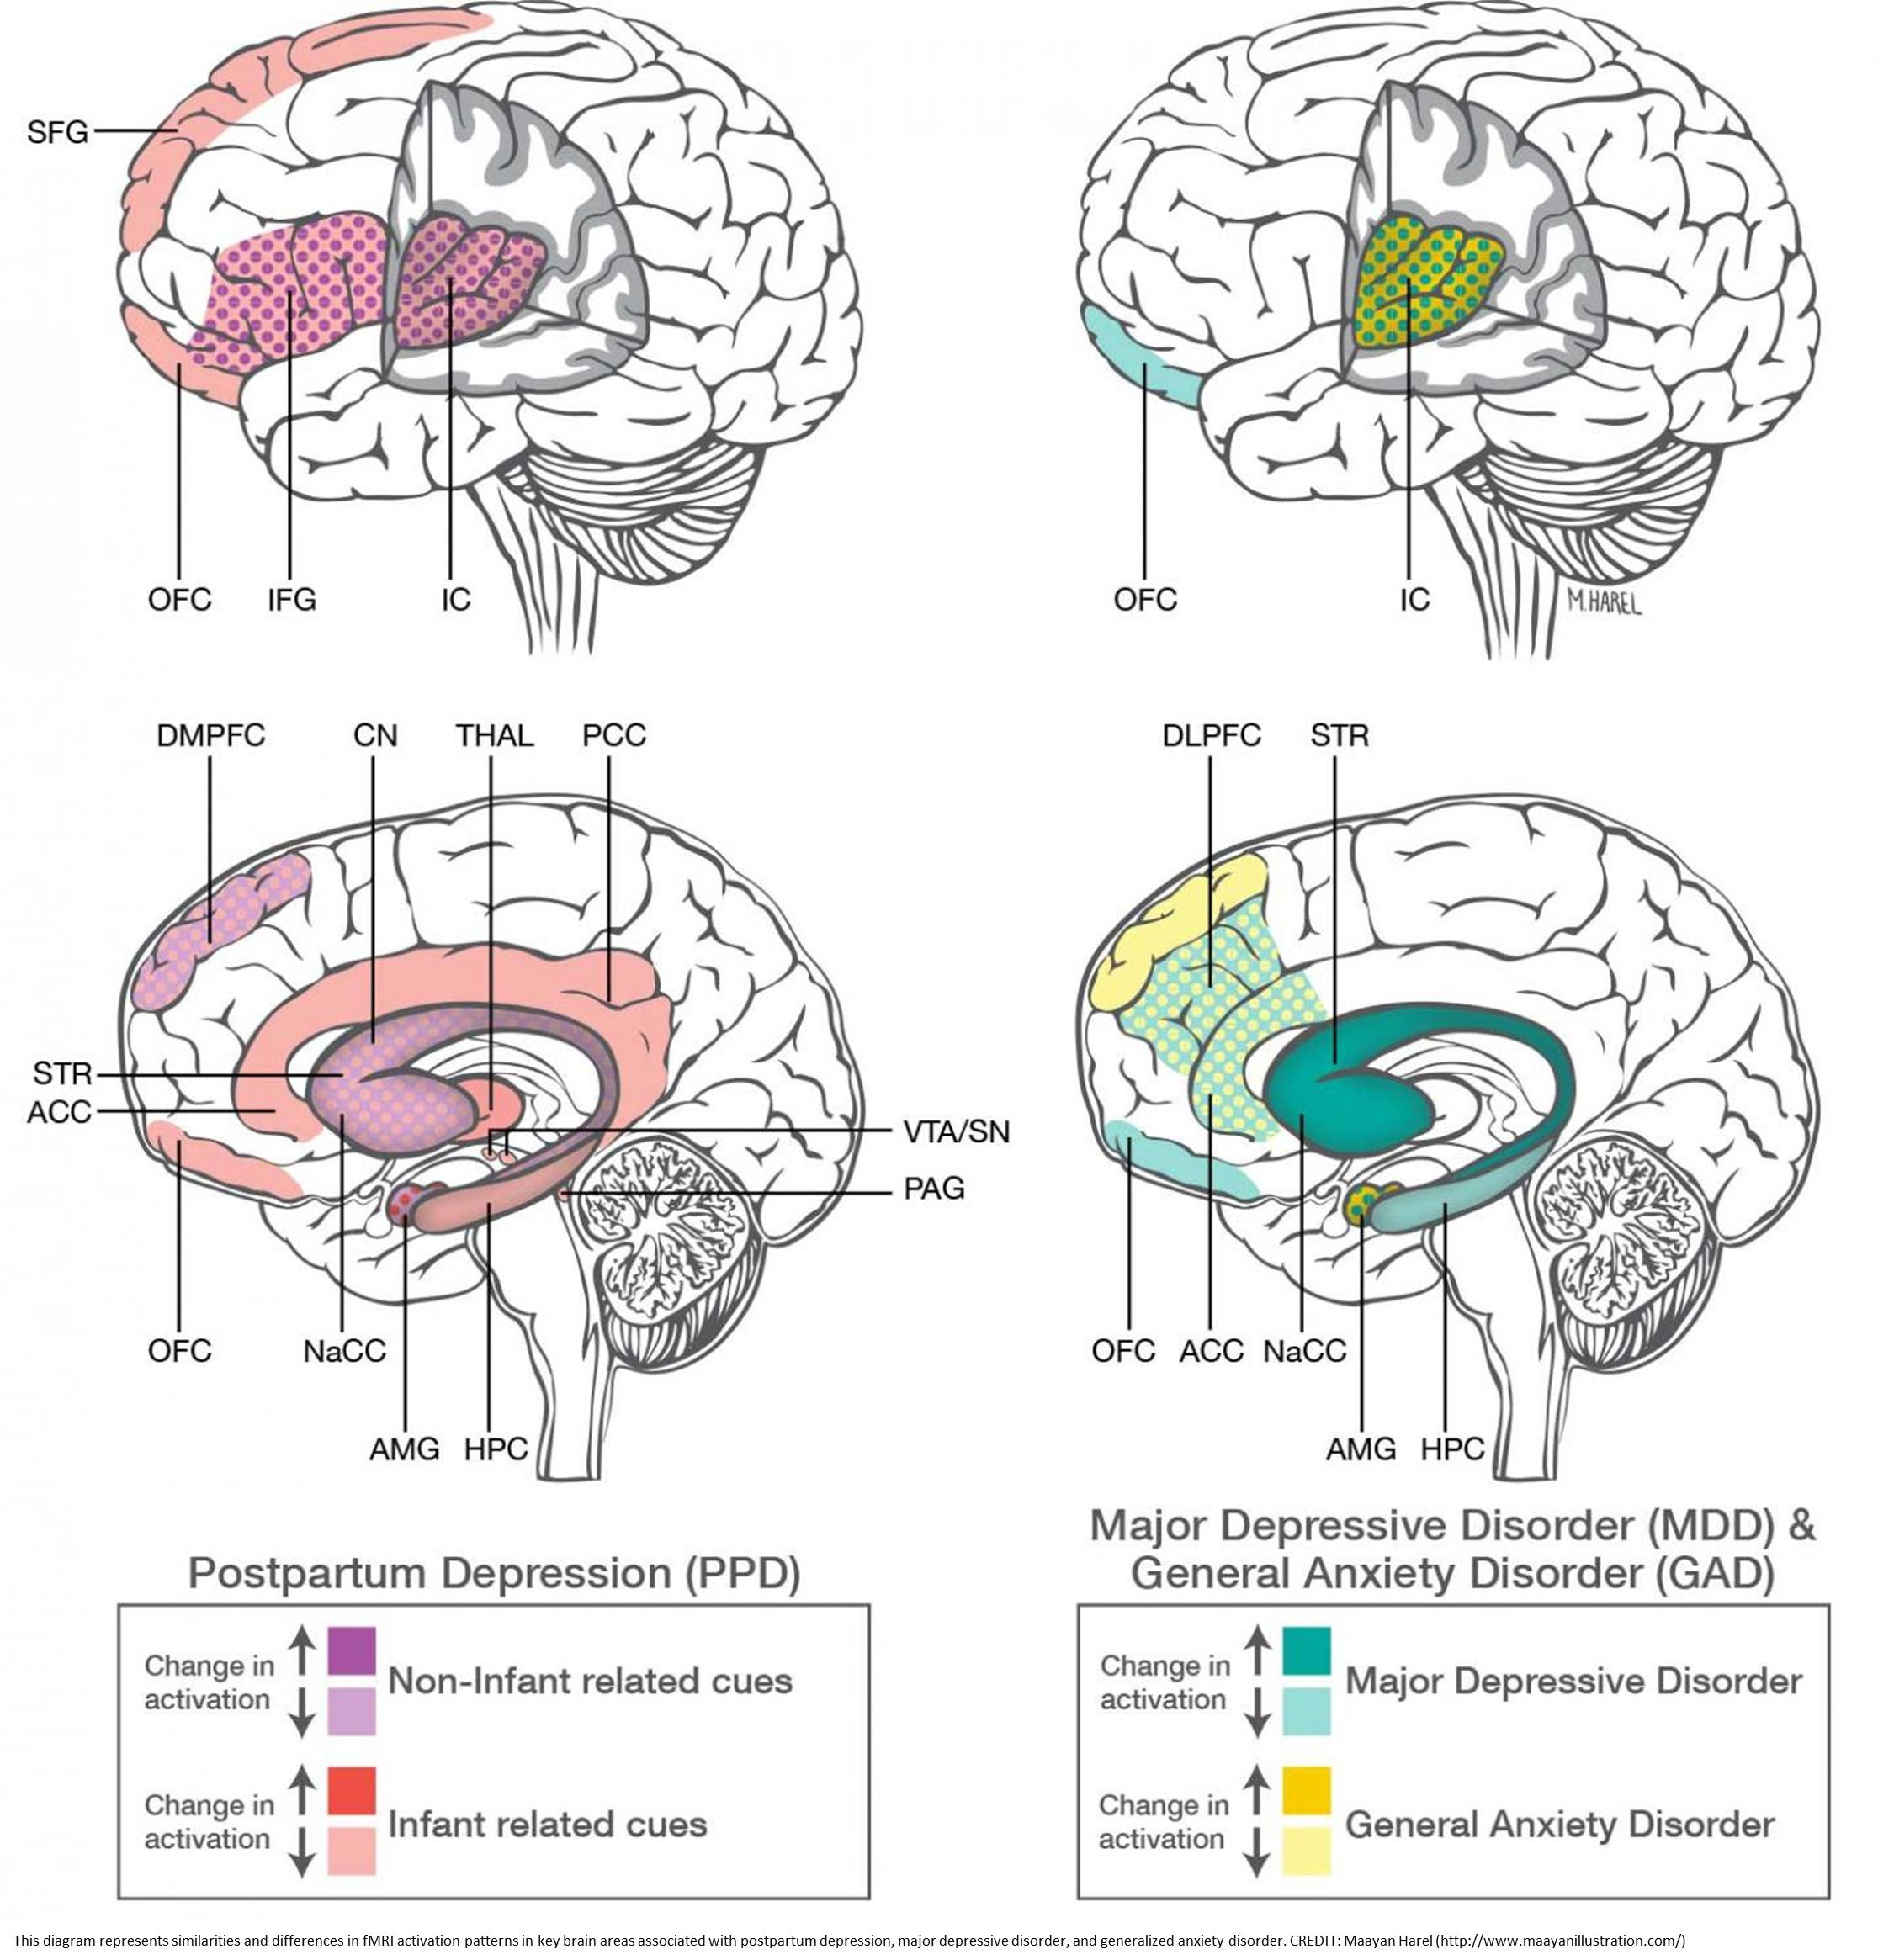 Postpartum depression & anxiety distinct from other mood disorders